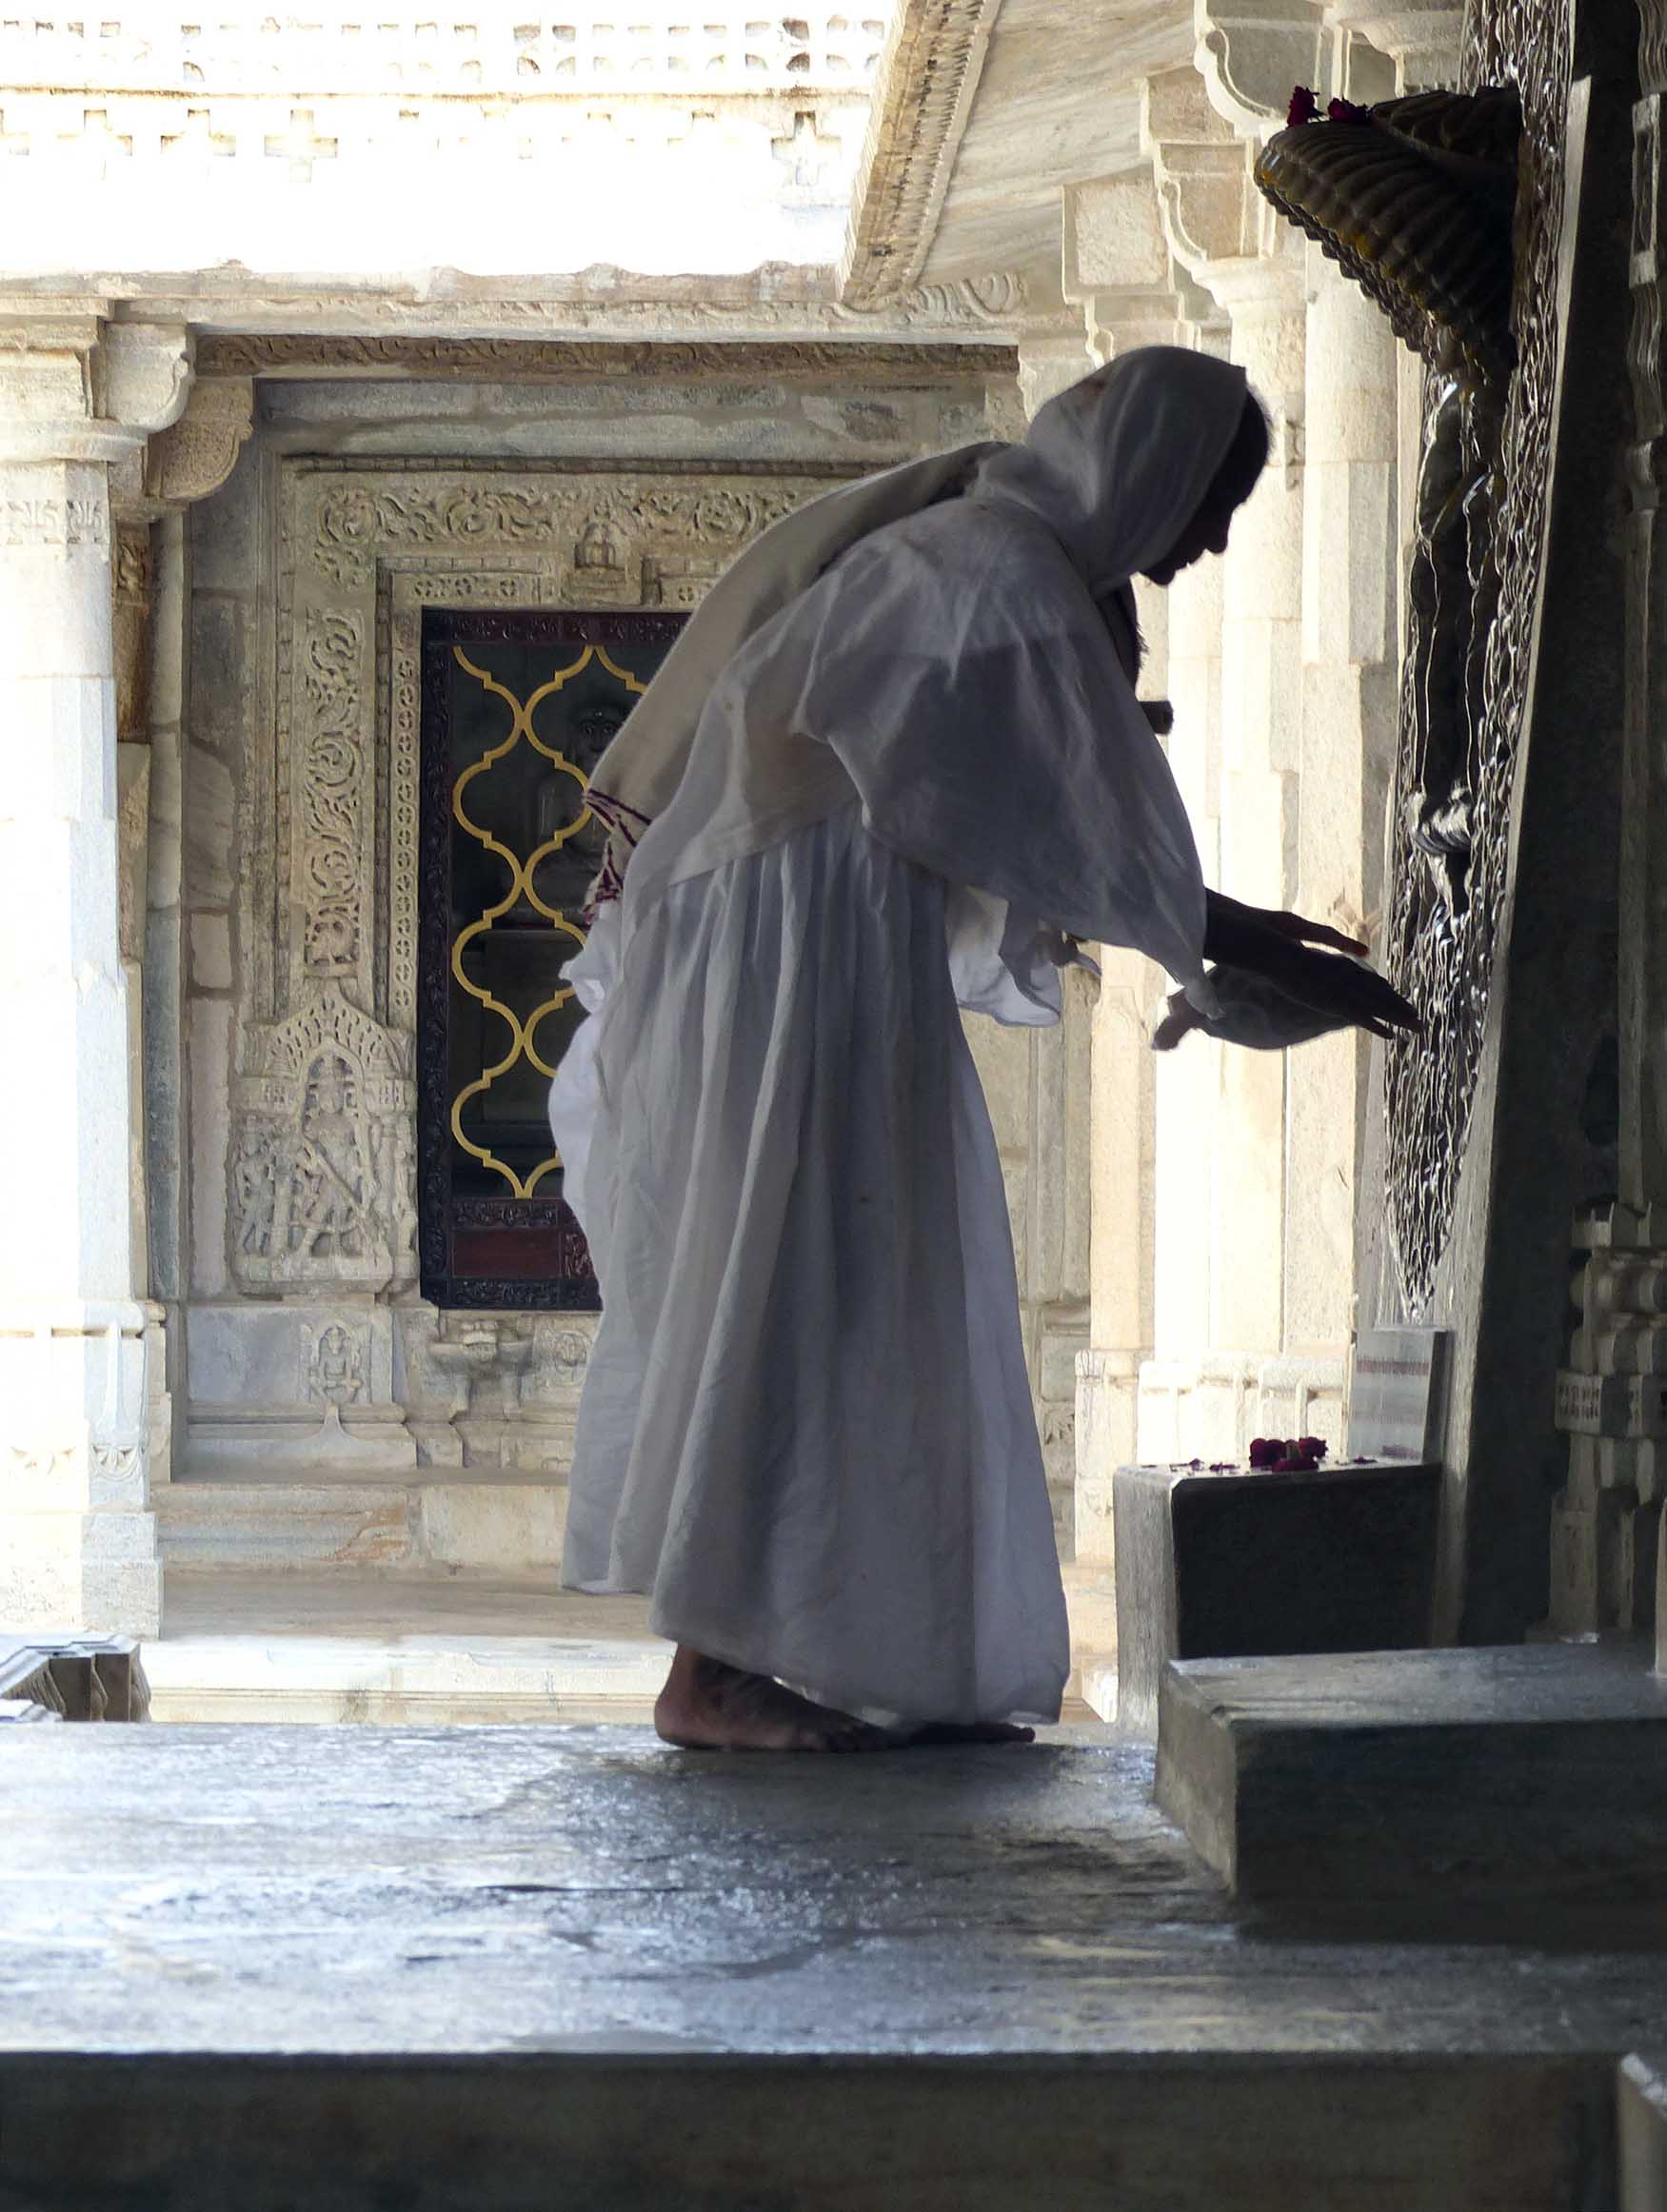 Nun in white robes before a carving